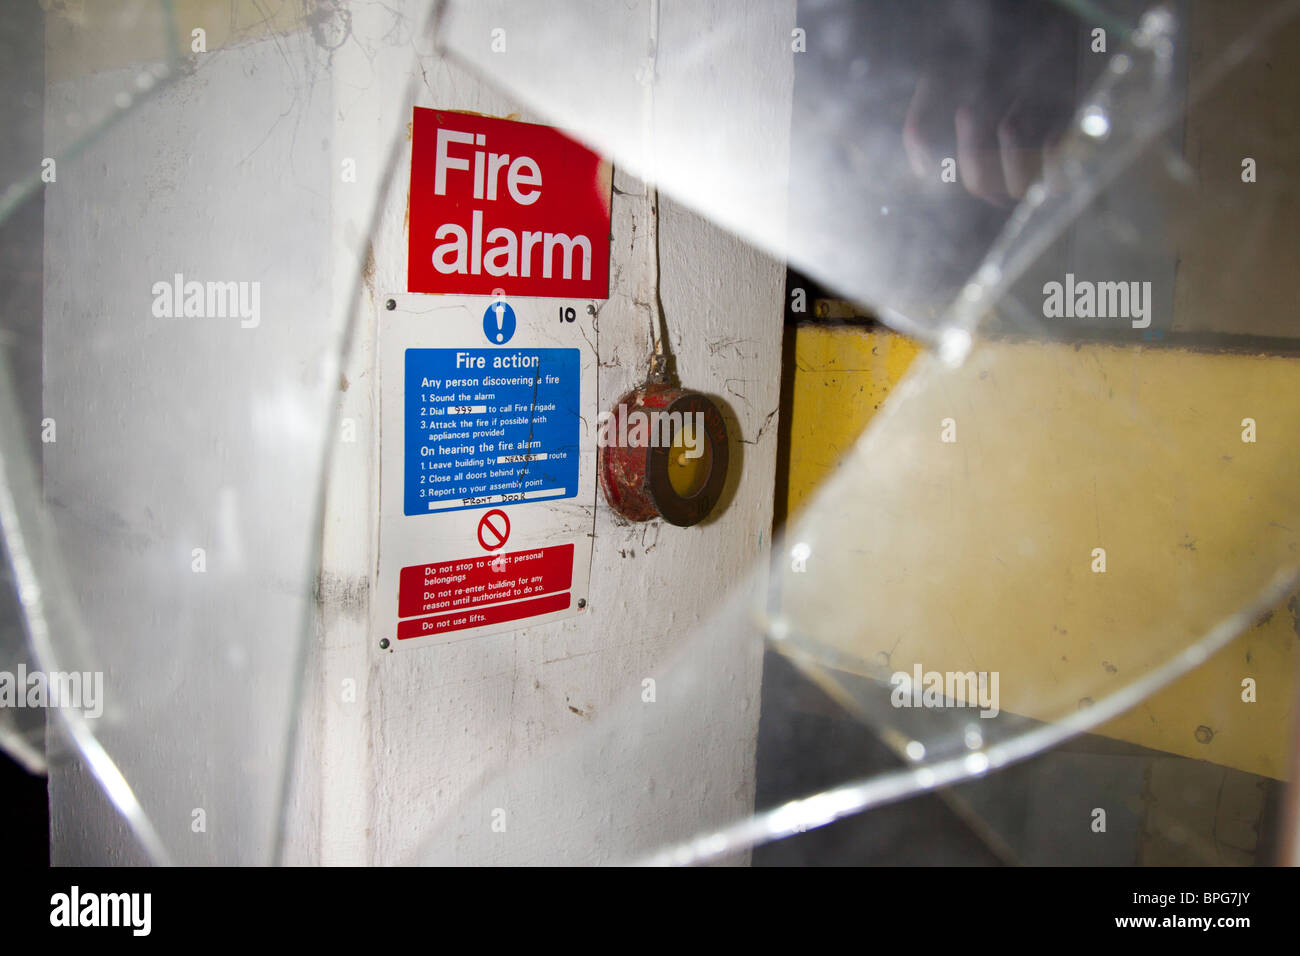 Broken Glass Door Stockfotos & Broken Glass Door Bilder - Alamy